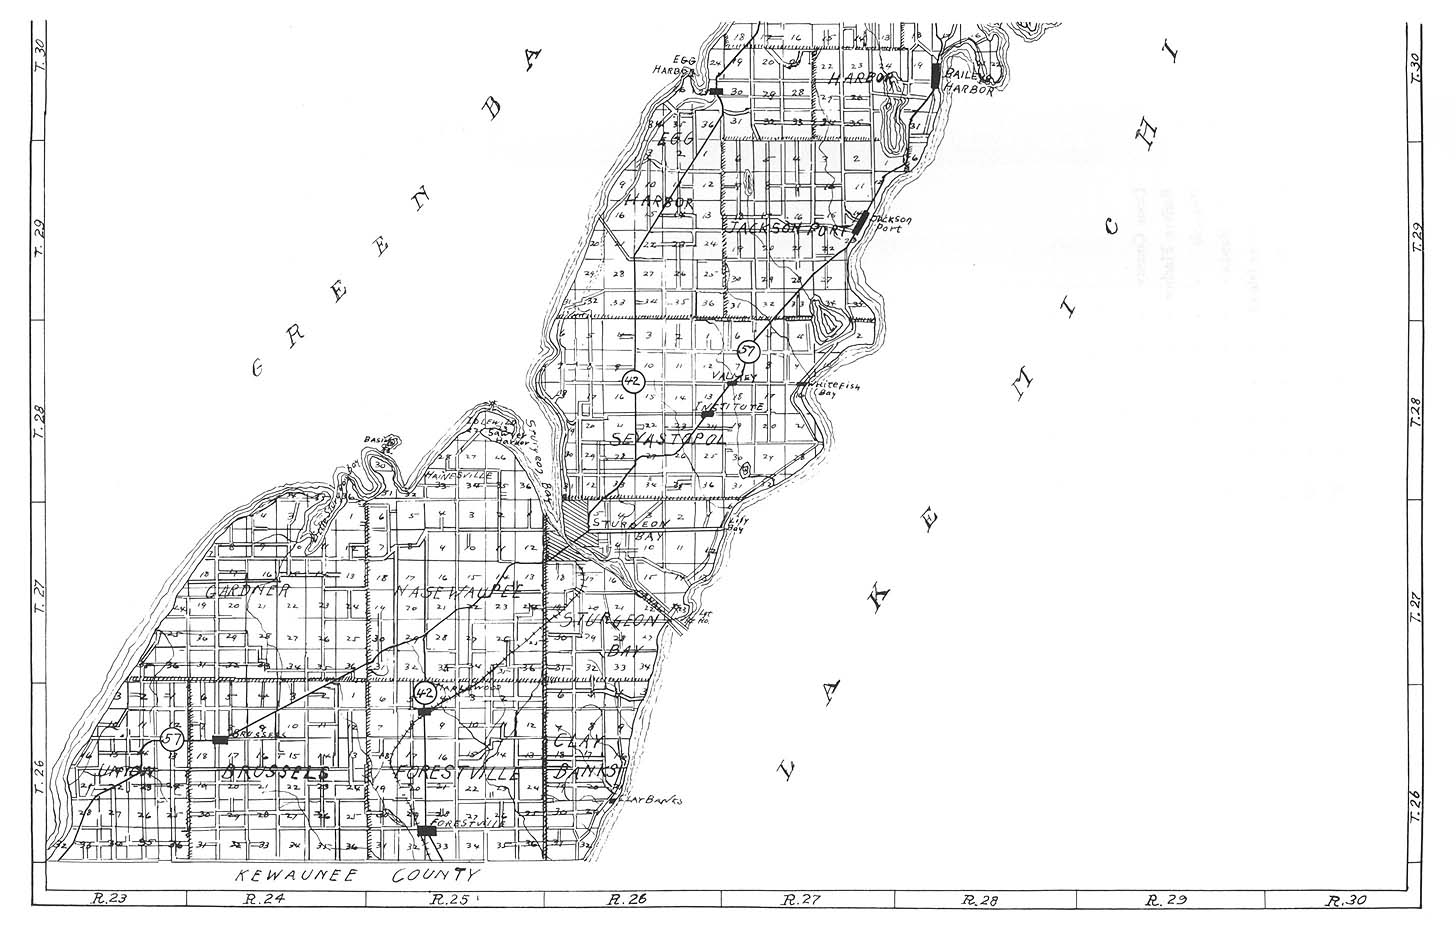 Door County - South  sc 1 st  USGenWeb Archives & Wisconsin Maps. Wisconsin Digital Map Library. Table of Contents ...